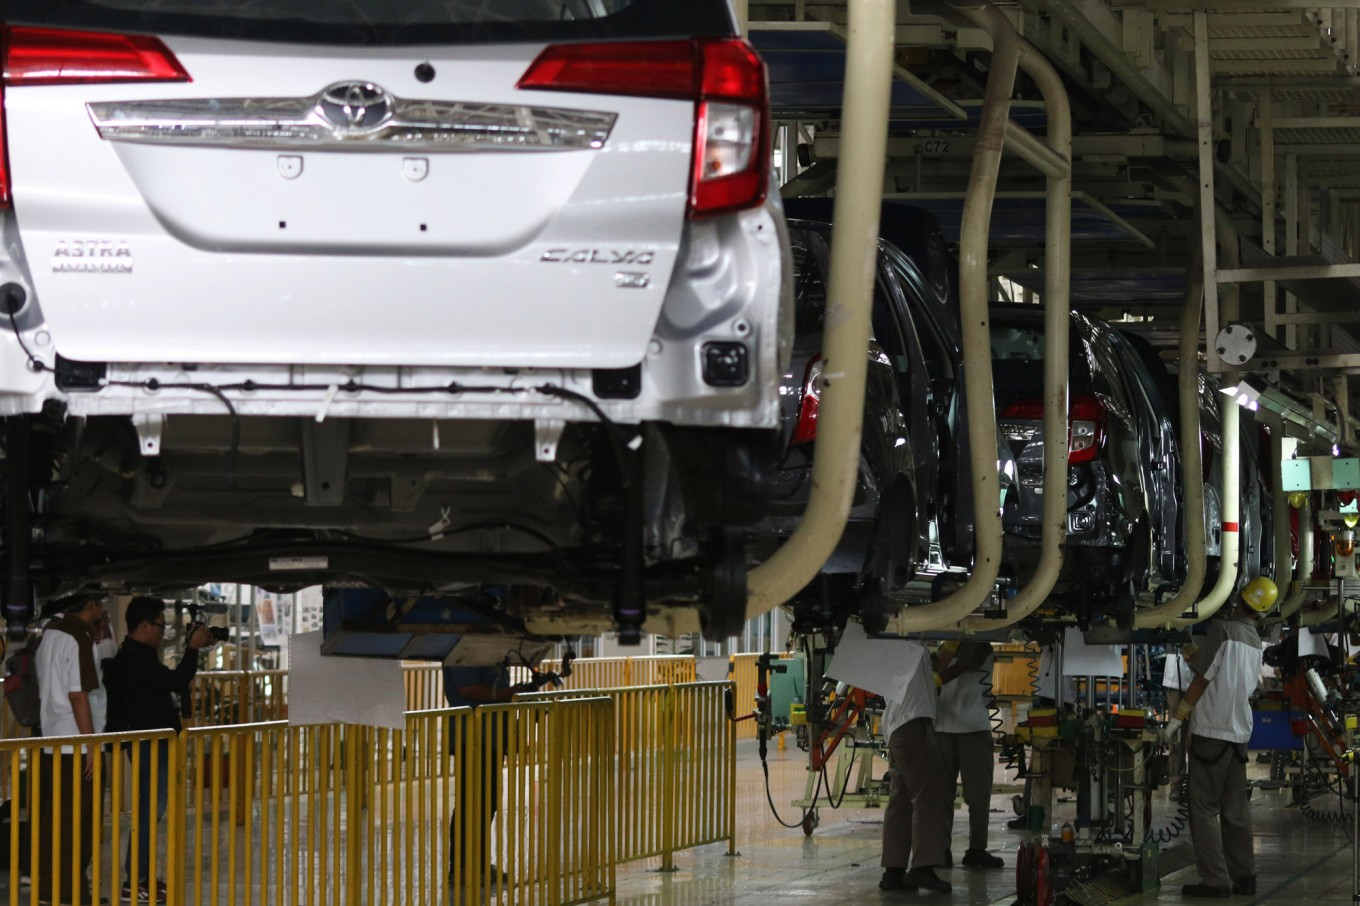 High wages still top concern for Japanese companies in Indonesia: Survey